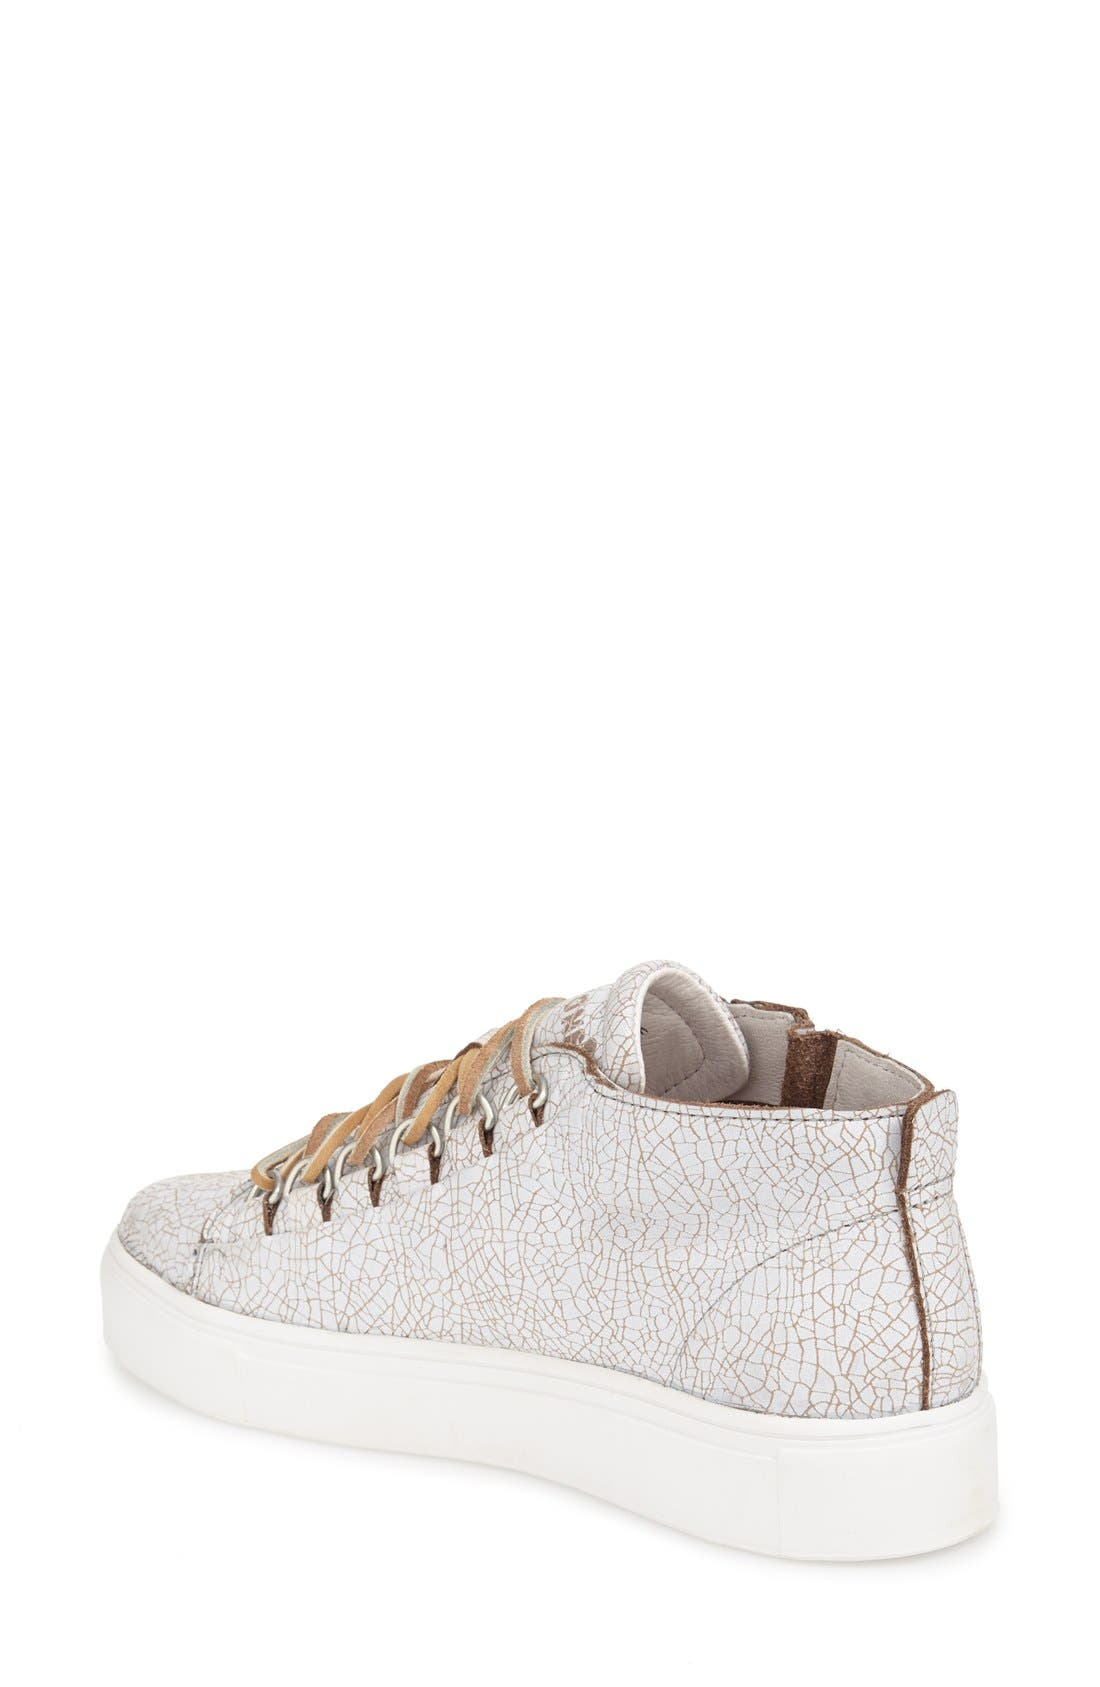 'LL60' Midi Sneaker,                             Alternate thumbnail 2, color,                             Hazel/ White Leather